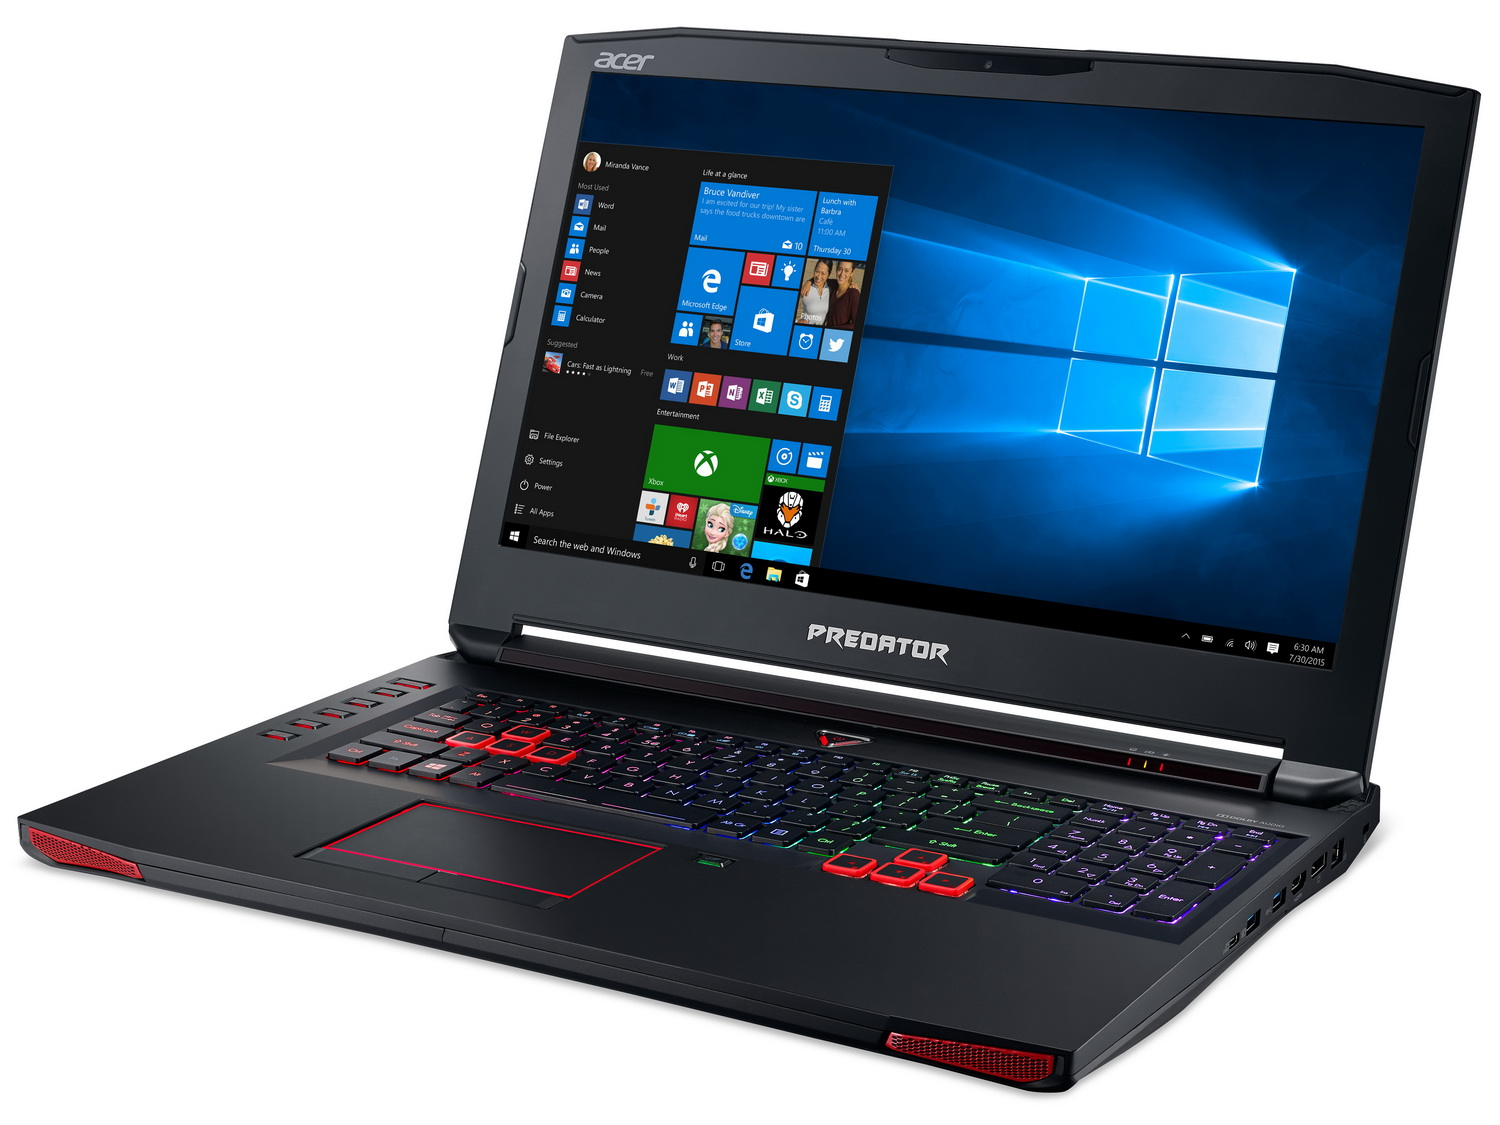 Spectrum Internet Options >> Acer refreshes Predator 15 and Predator 17 gaming notebooks - NotebookCheck.net News